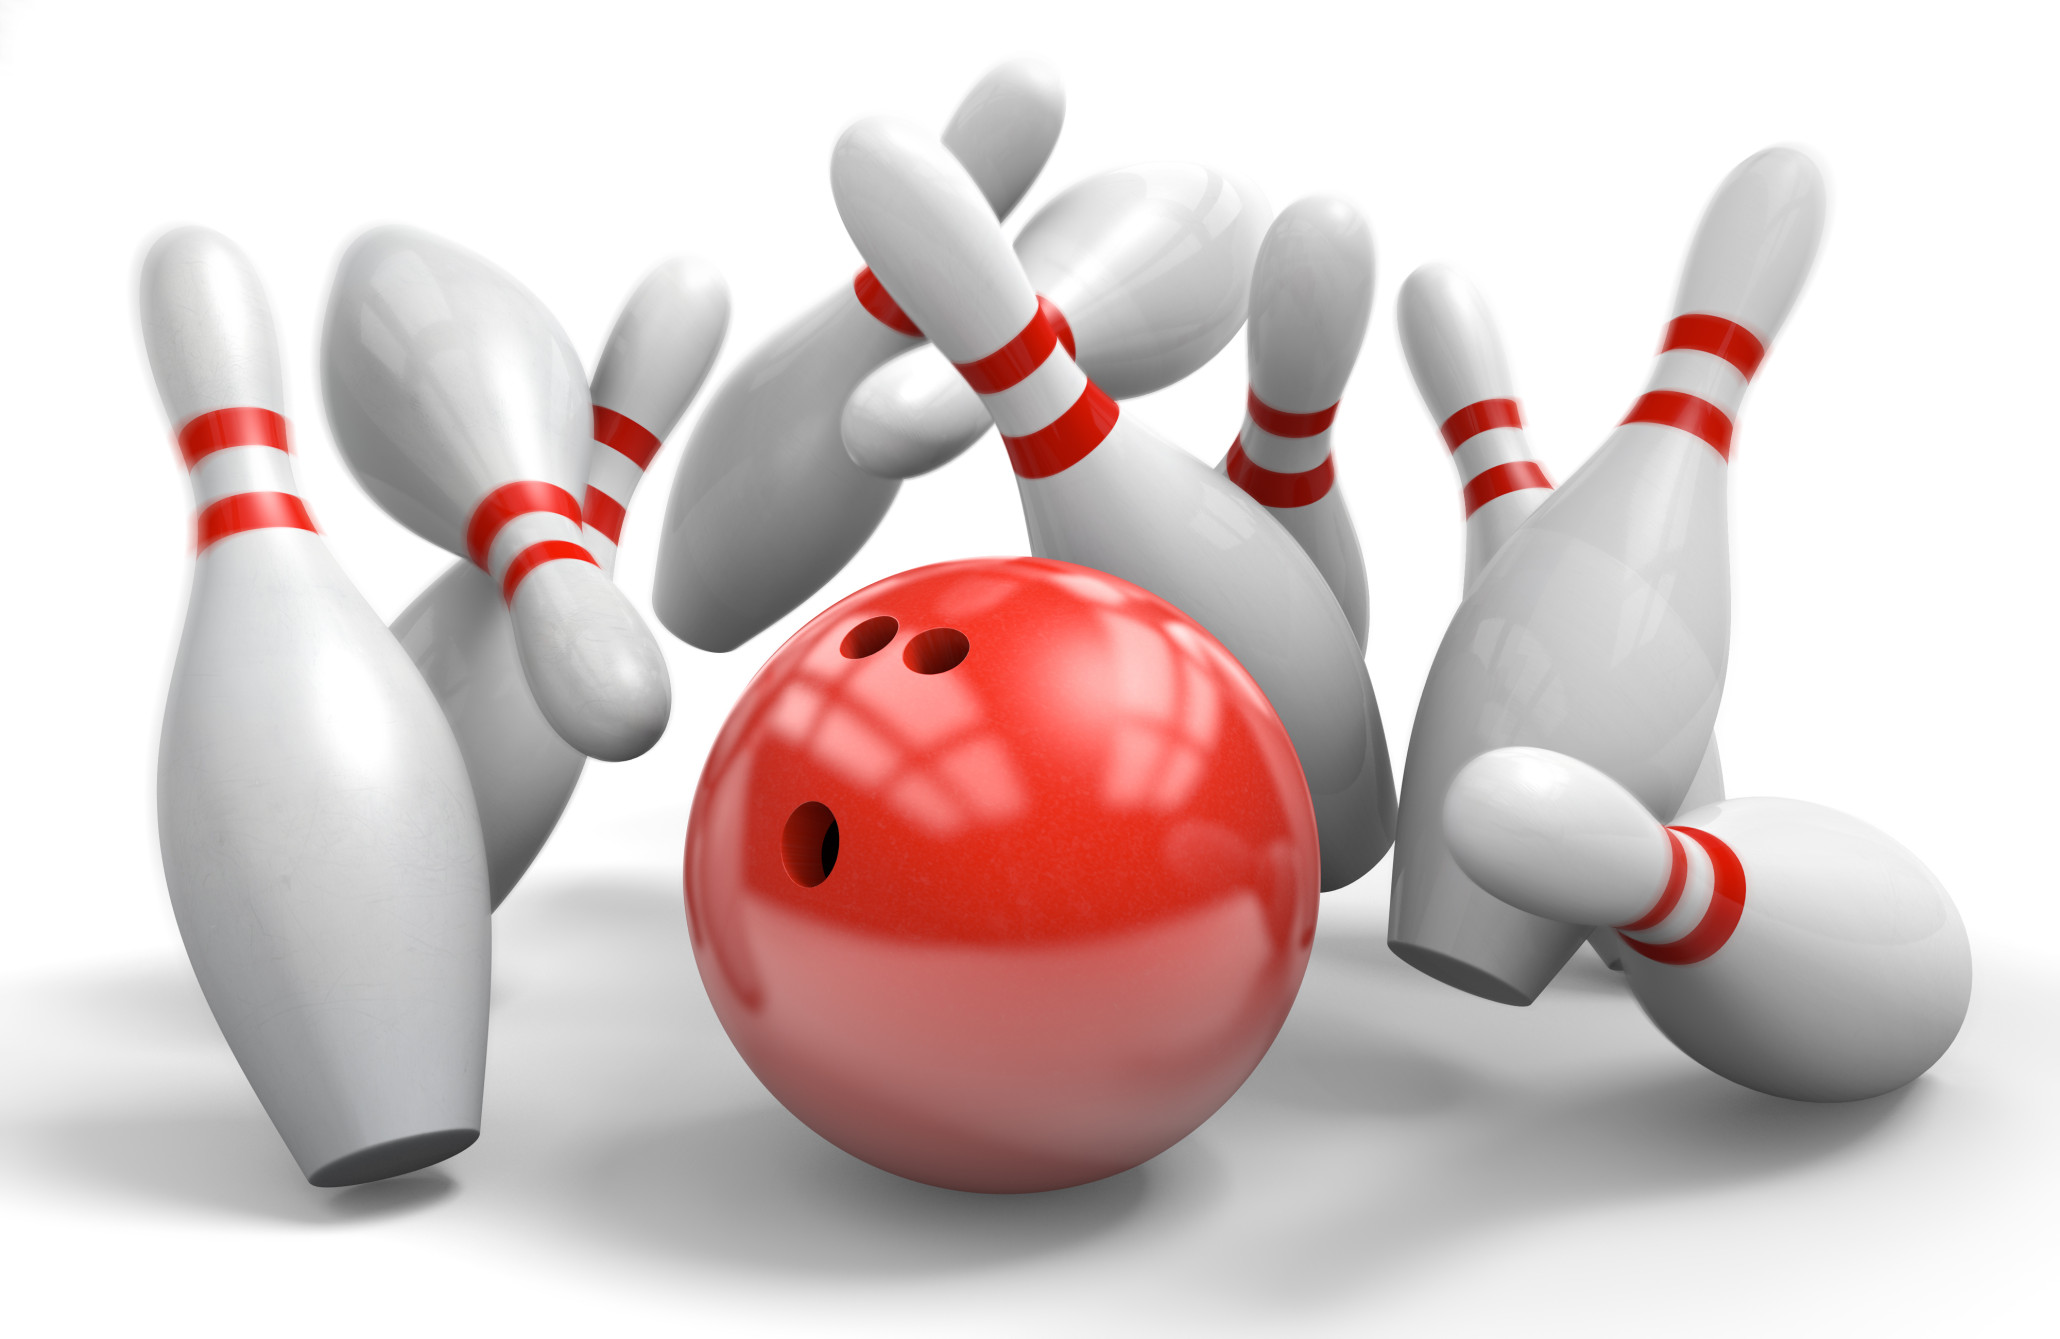 Amazing Bowling Pictures & Backgrounds